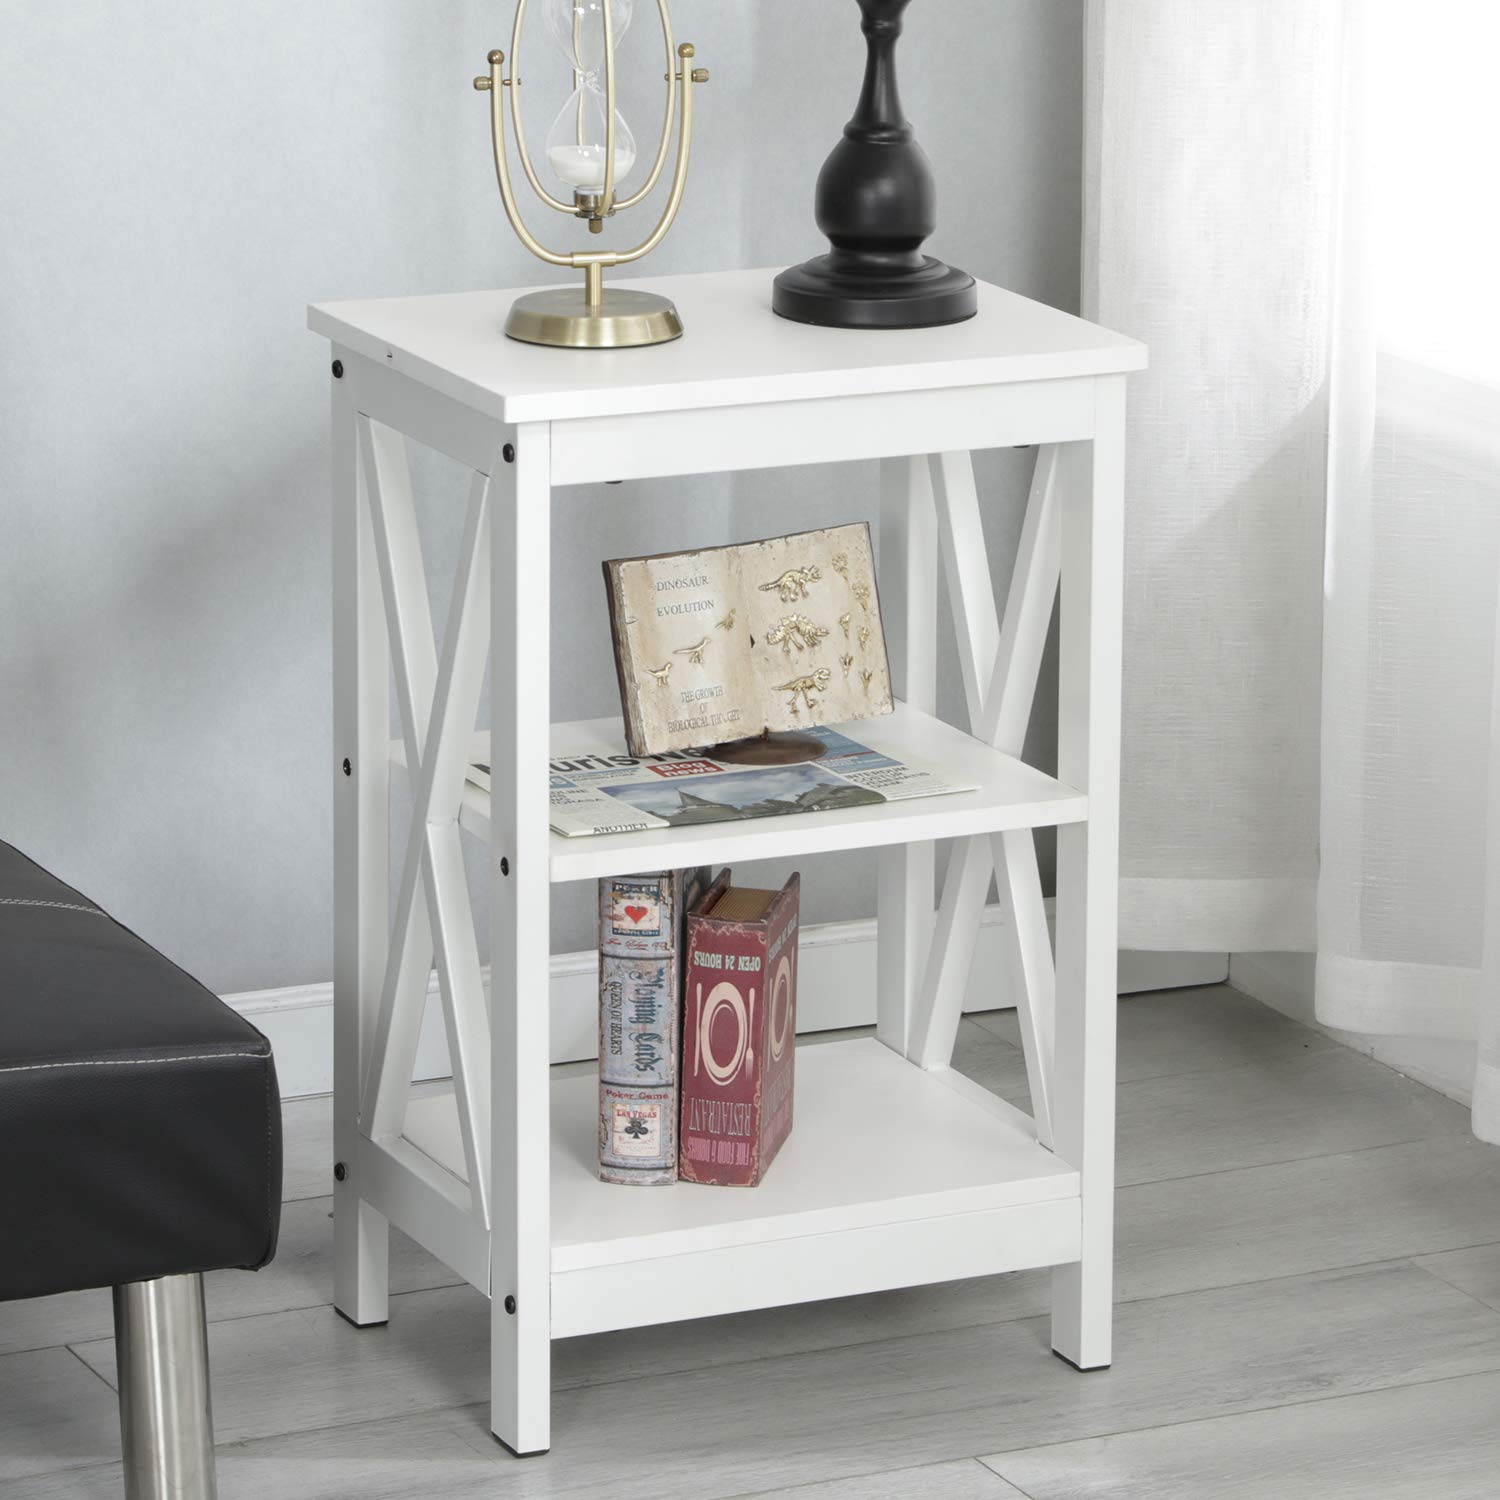 Grote Smalle Sidetable.Soges End Table Coffee Table Night Stand Side Table Sofa Table With 3 Tier Shelf White Dx 240a Xw